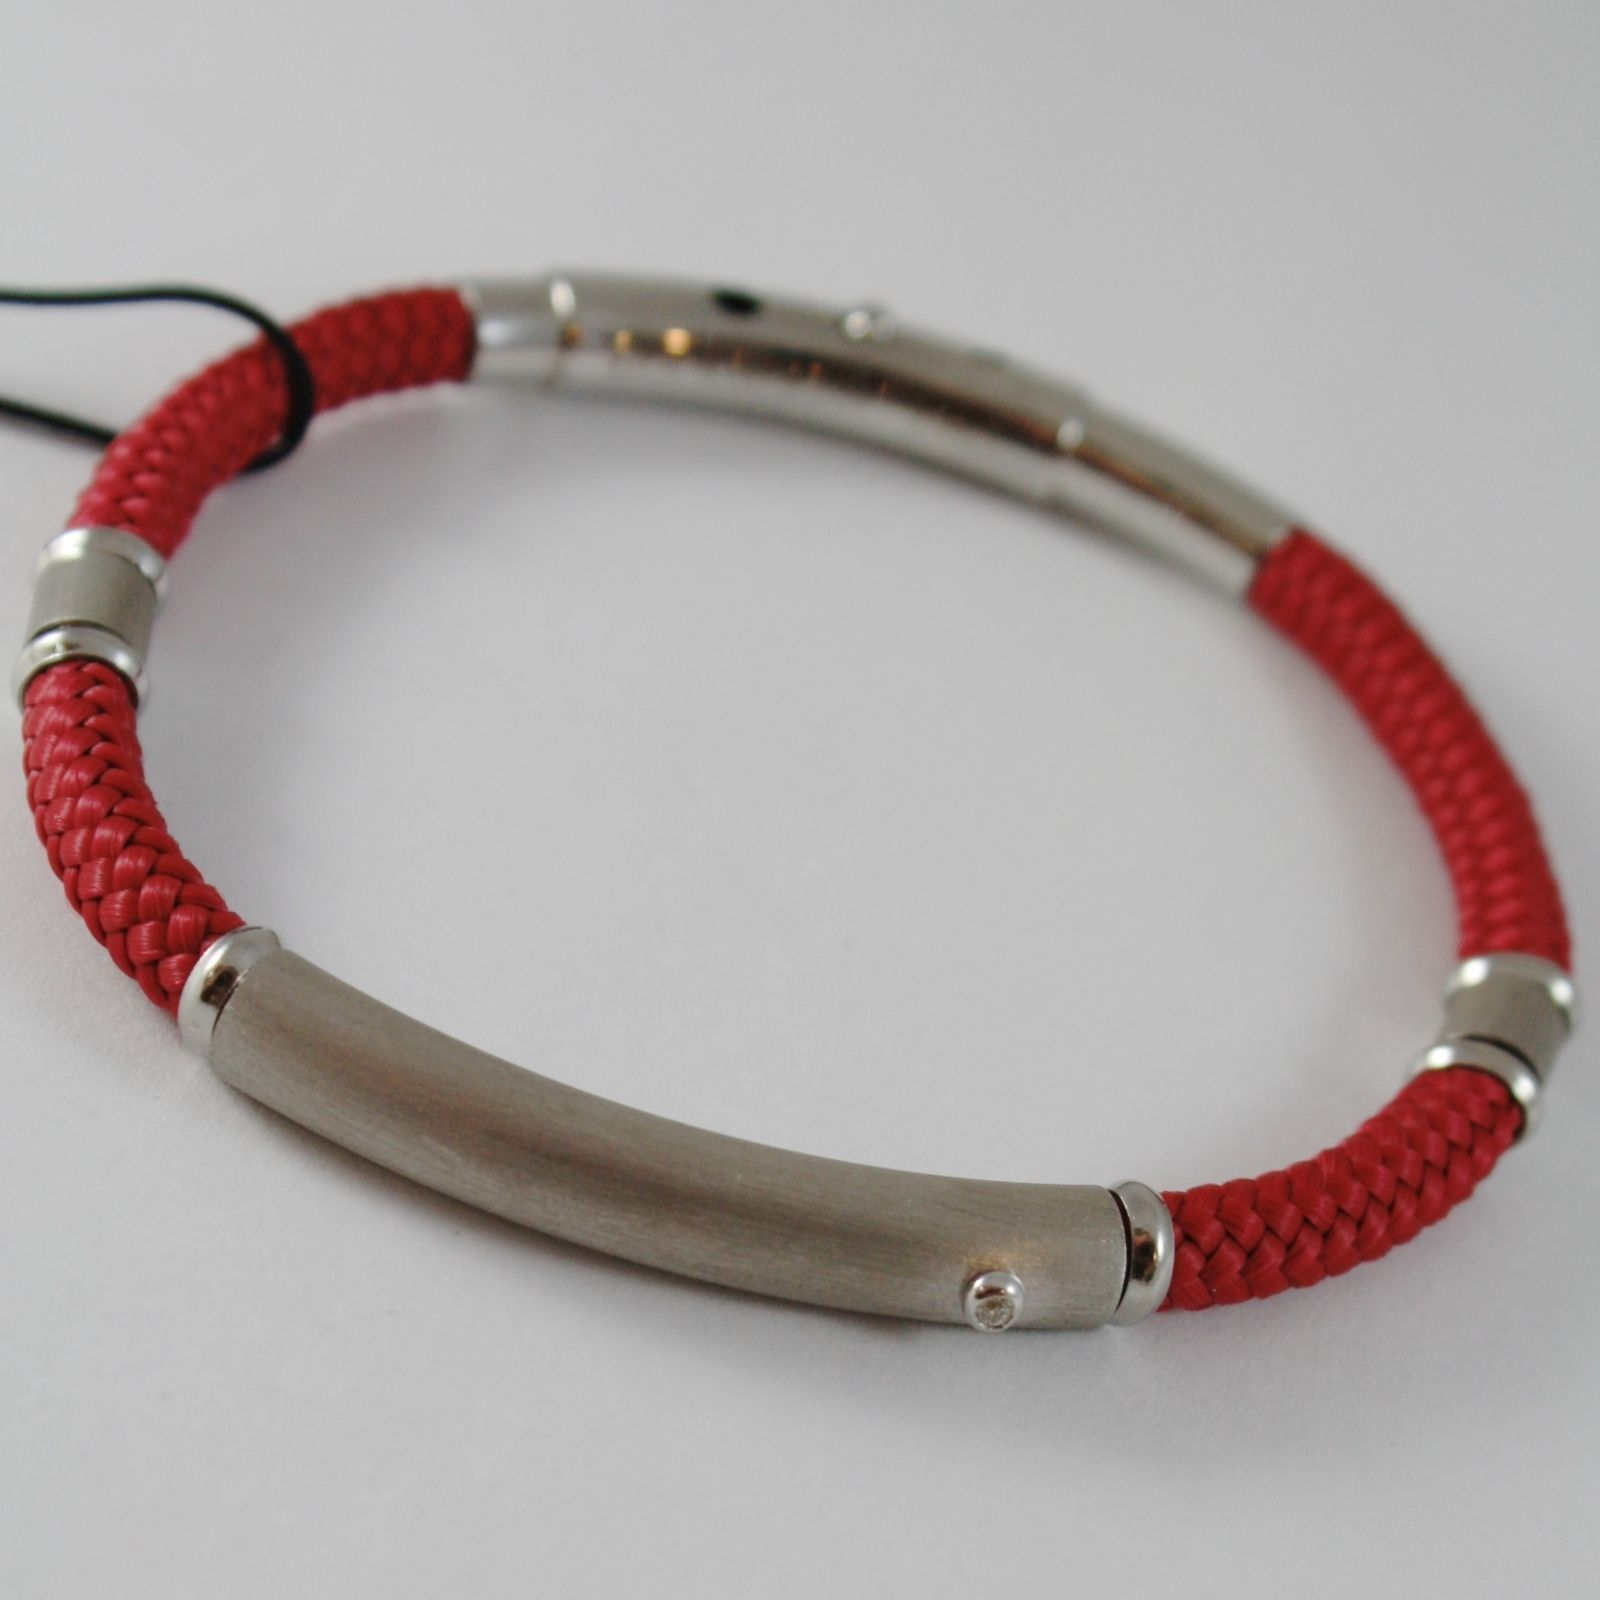 925 SILVER ZANCAN BRACELET BIG NAUTICAL RED ROPE & SATIN PLATE MADE IN ITALY